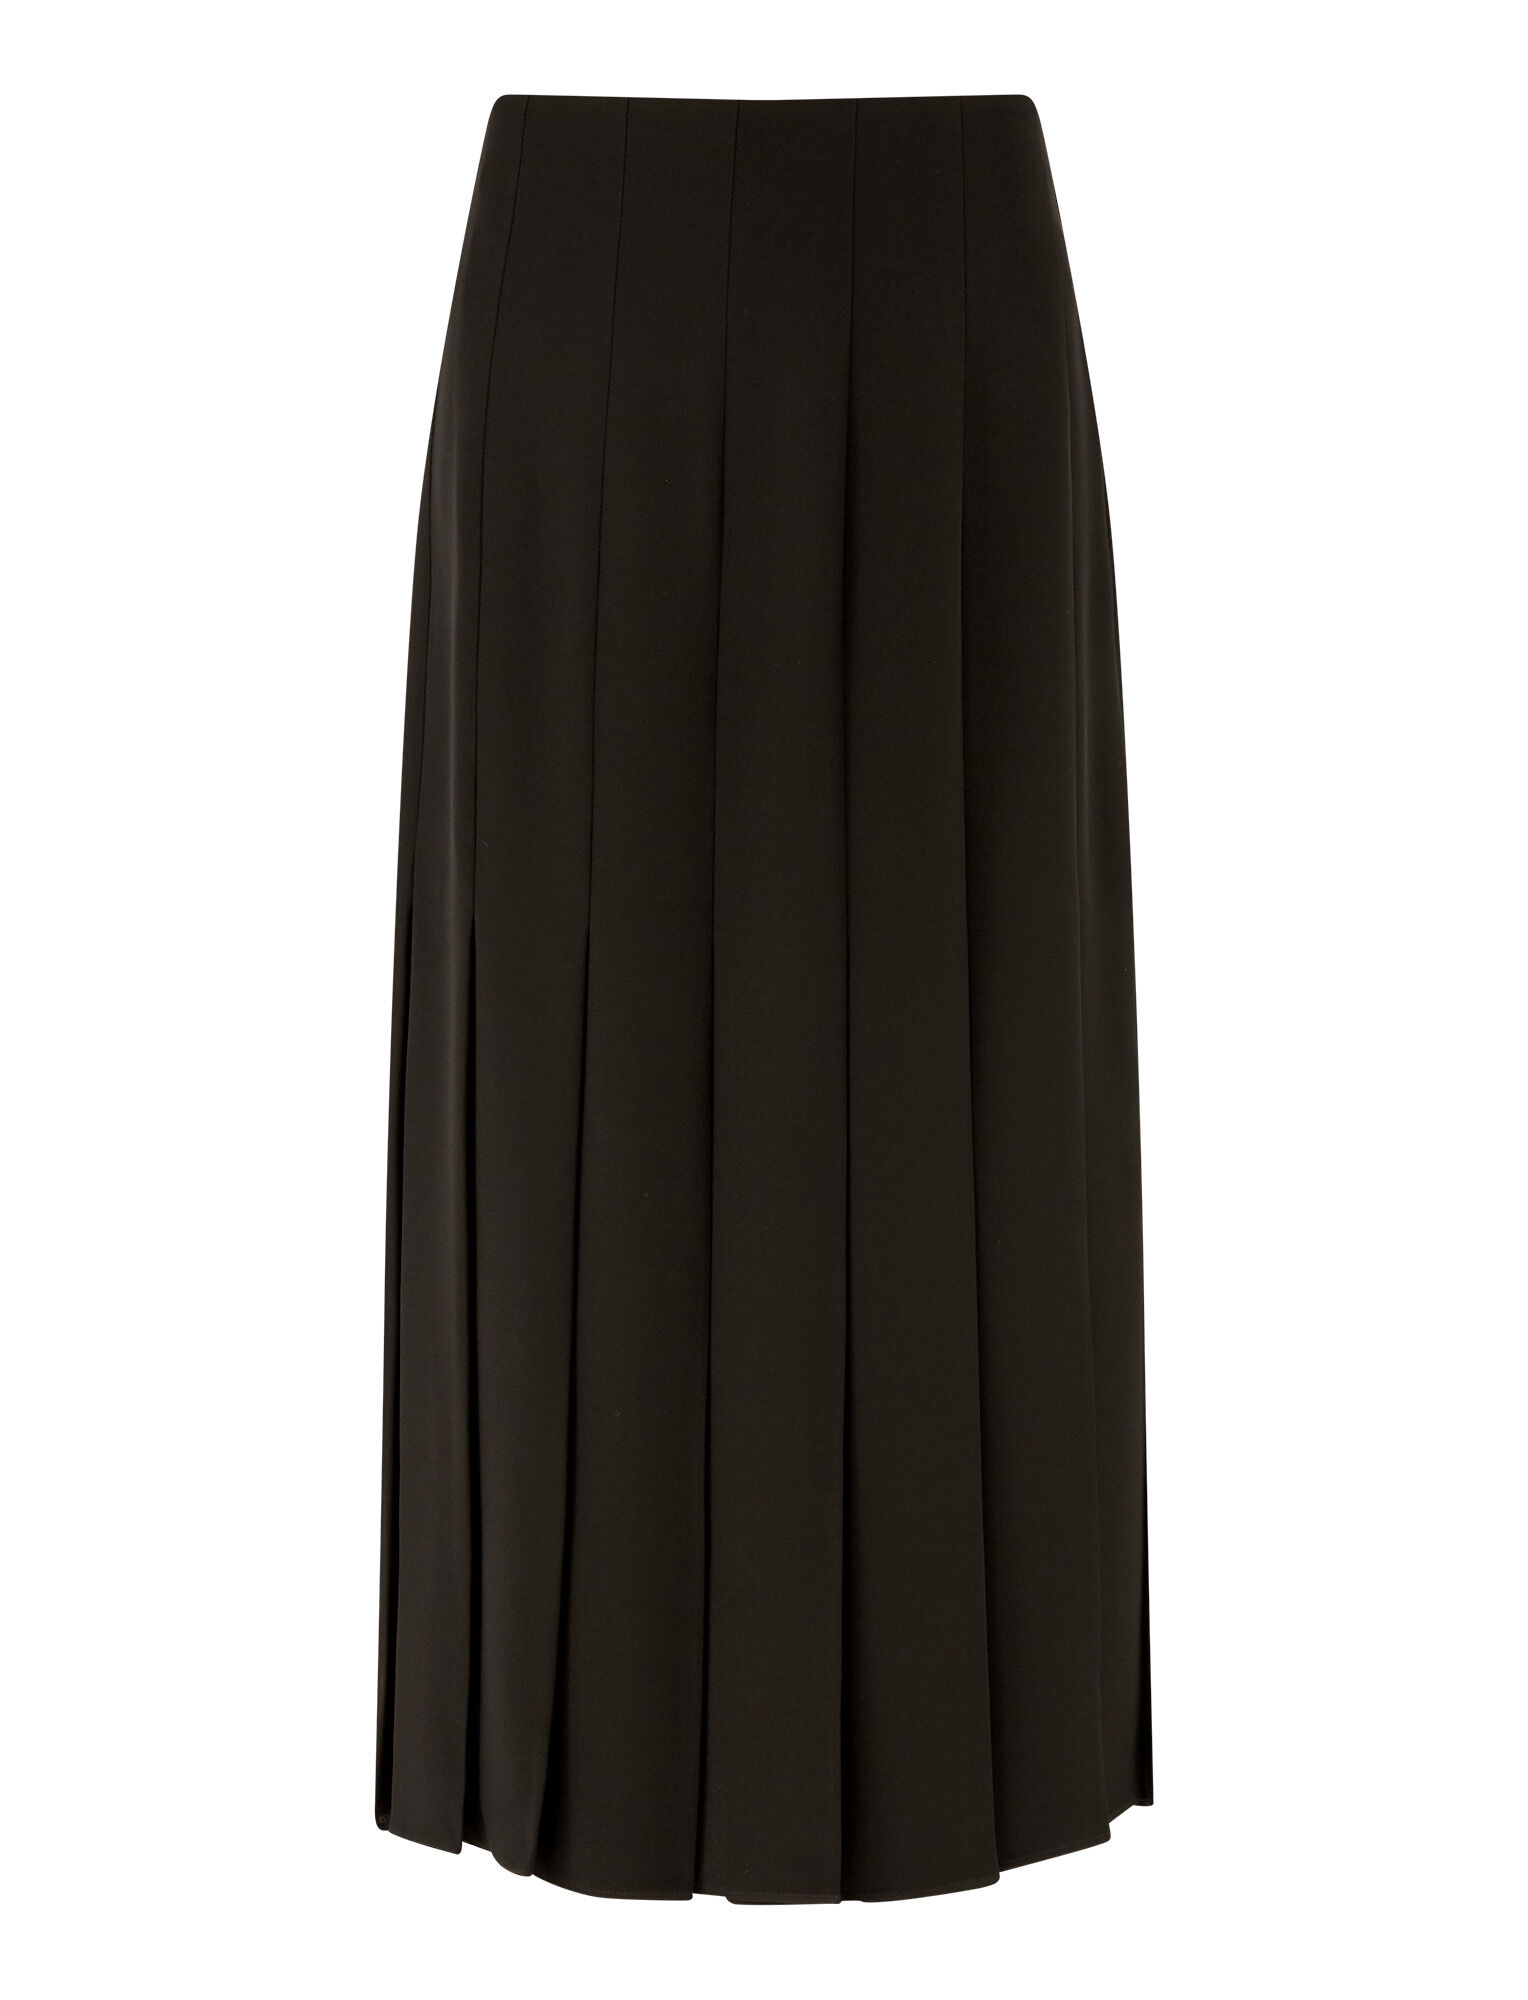 Joseph, Saria Heavy Silk Skirt, in Black